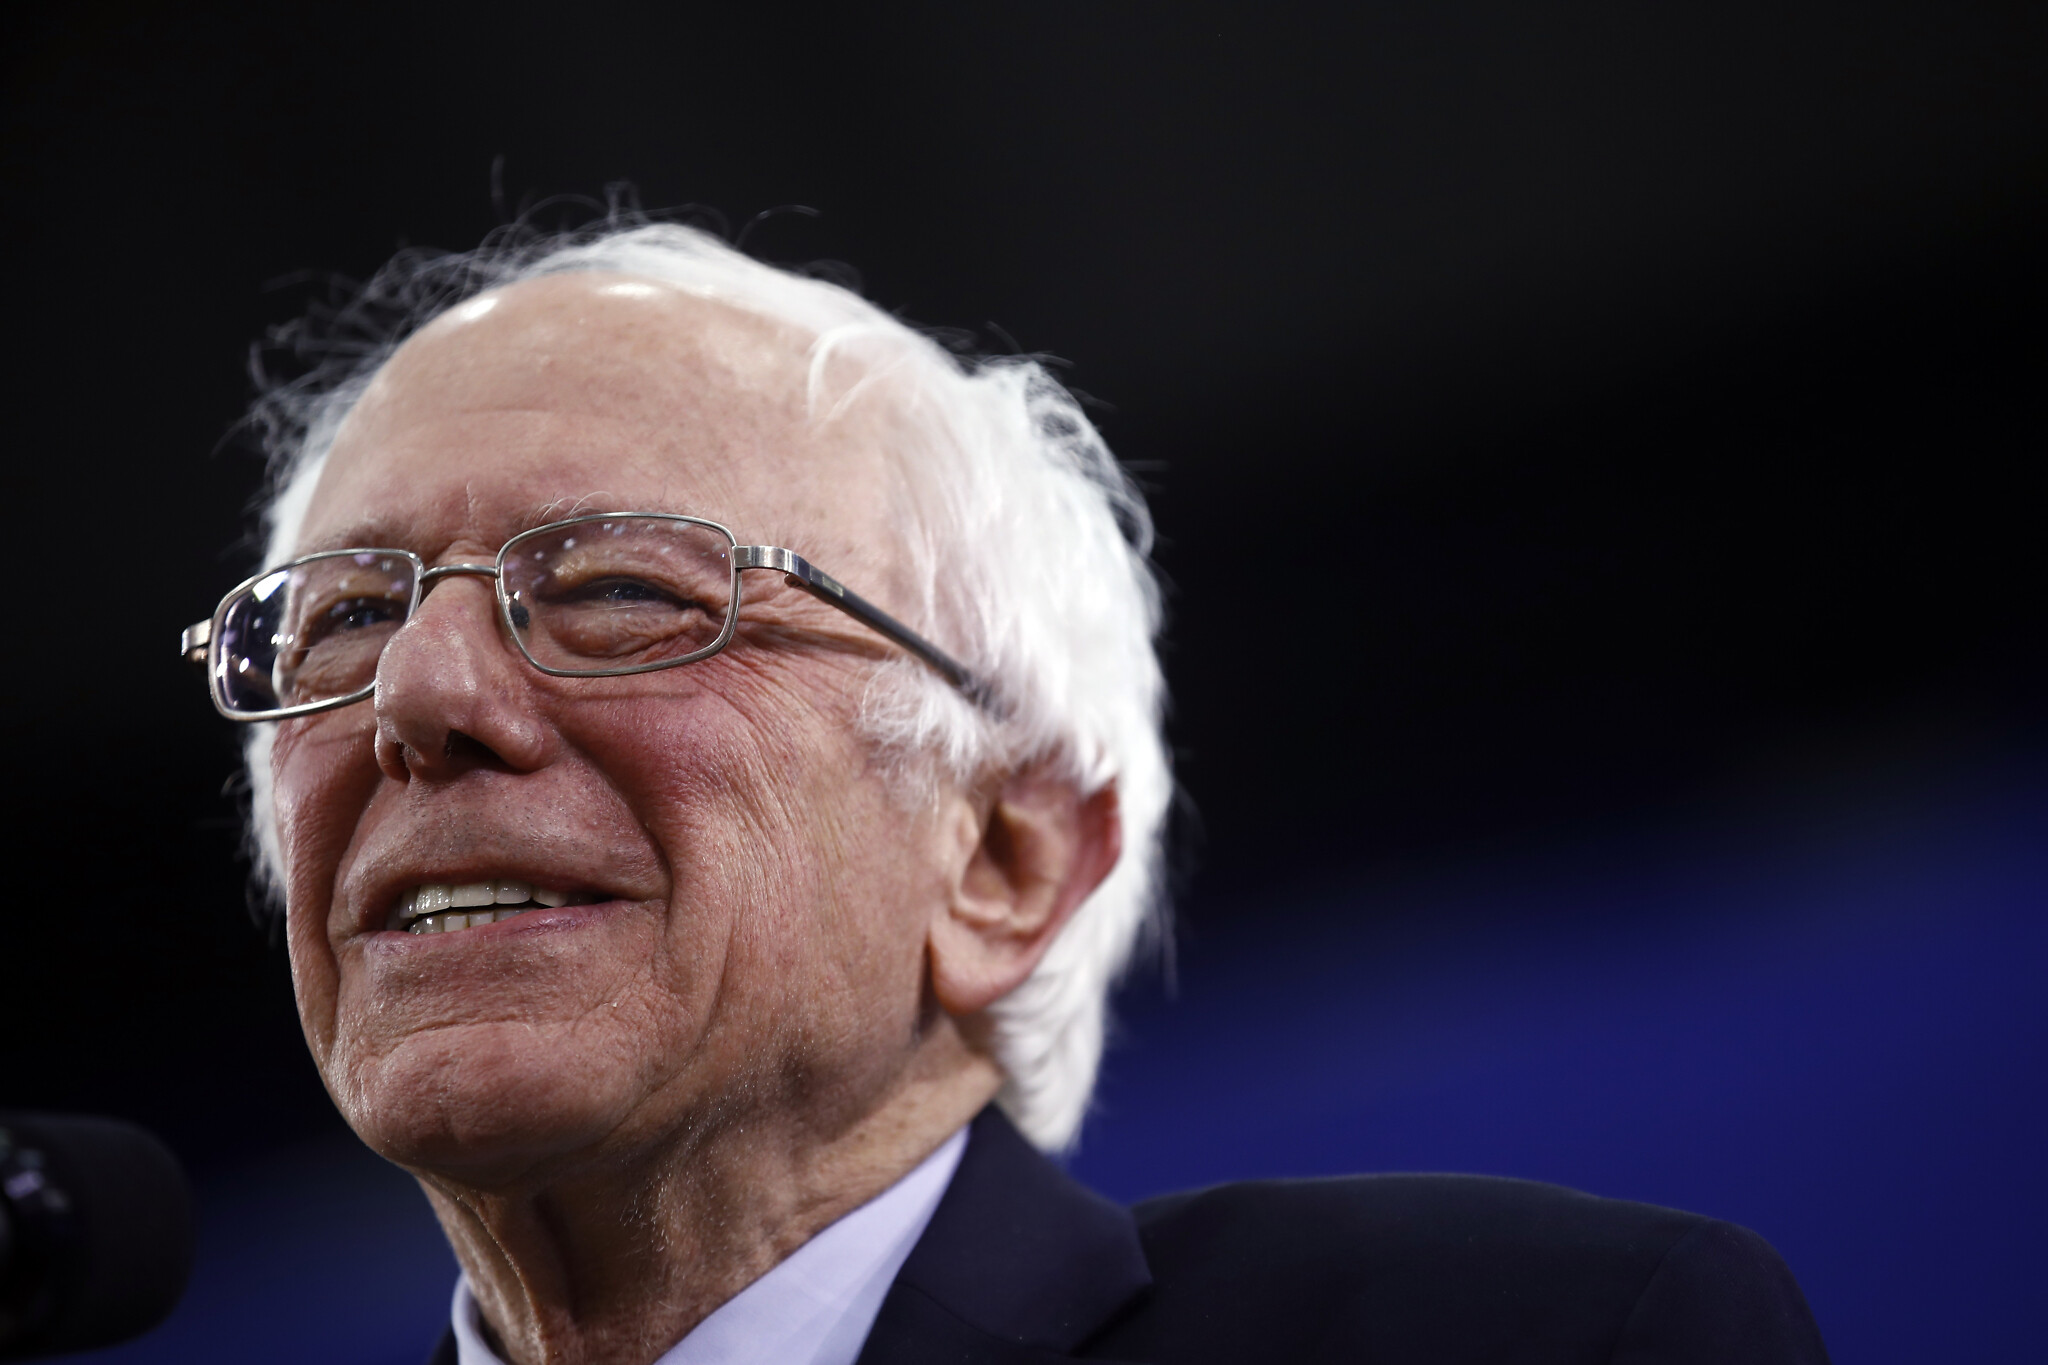 Sanders and Buttigieg enjoy top spots in New Hampshire primary